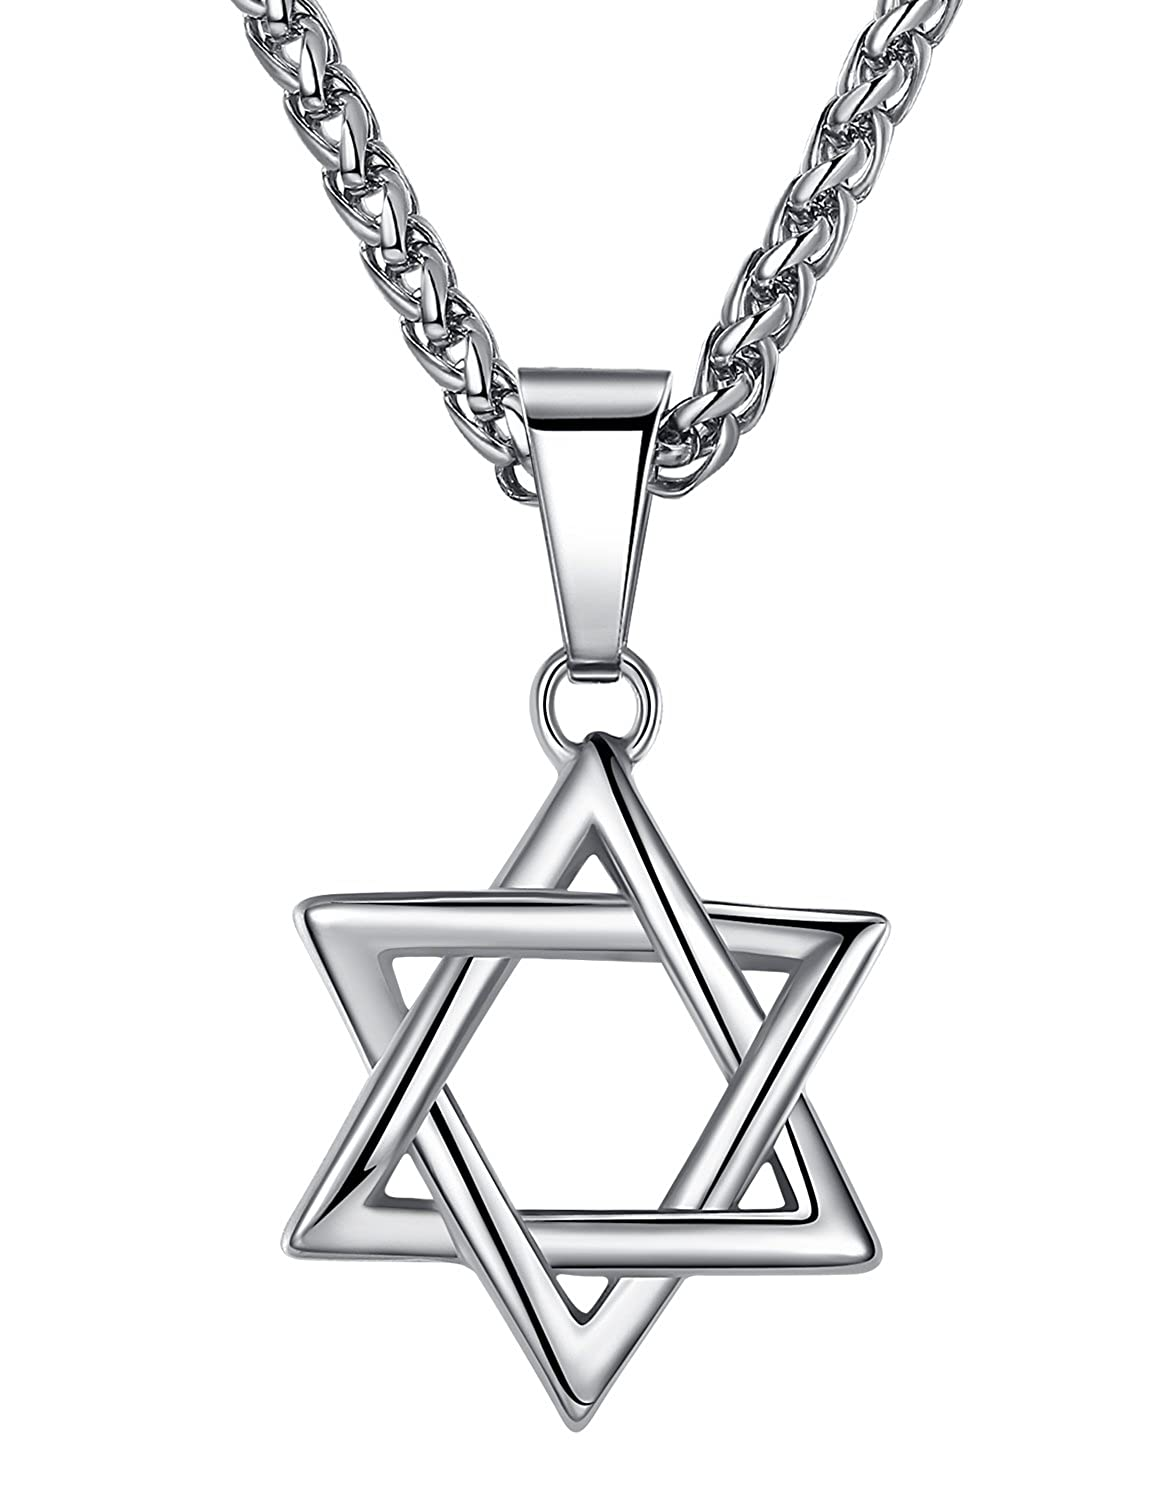 Aoiy Stainless Steel Star of David Pendant Necklace, Unisex, 24 Link Chain, hhp010 24 Link Chain UK_B01BA72GGC